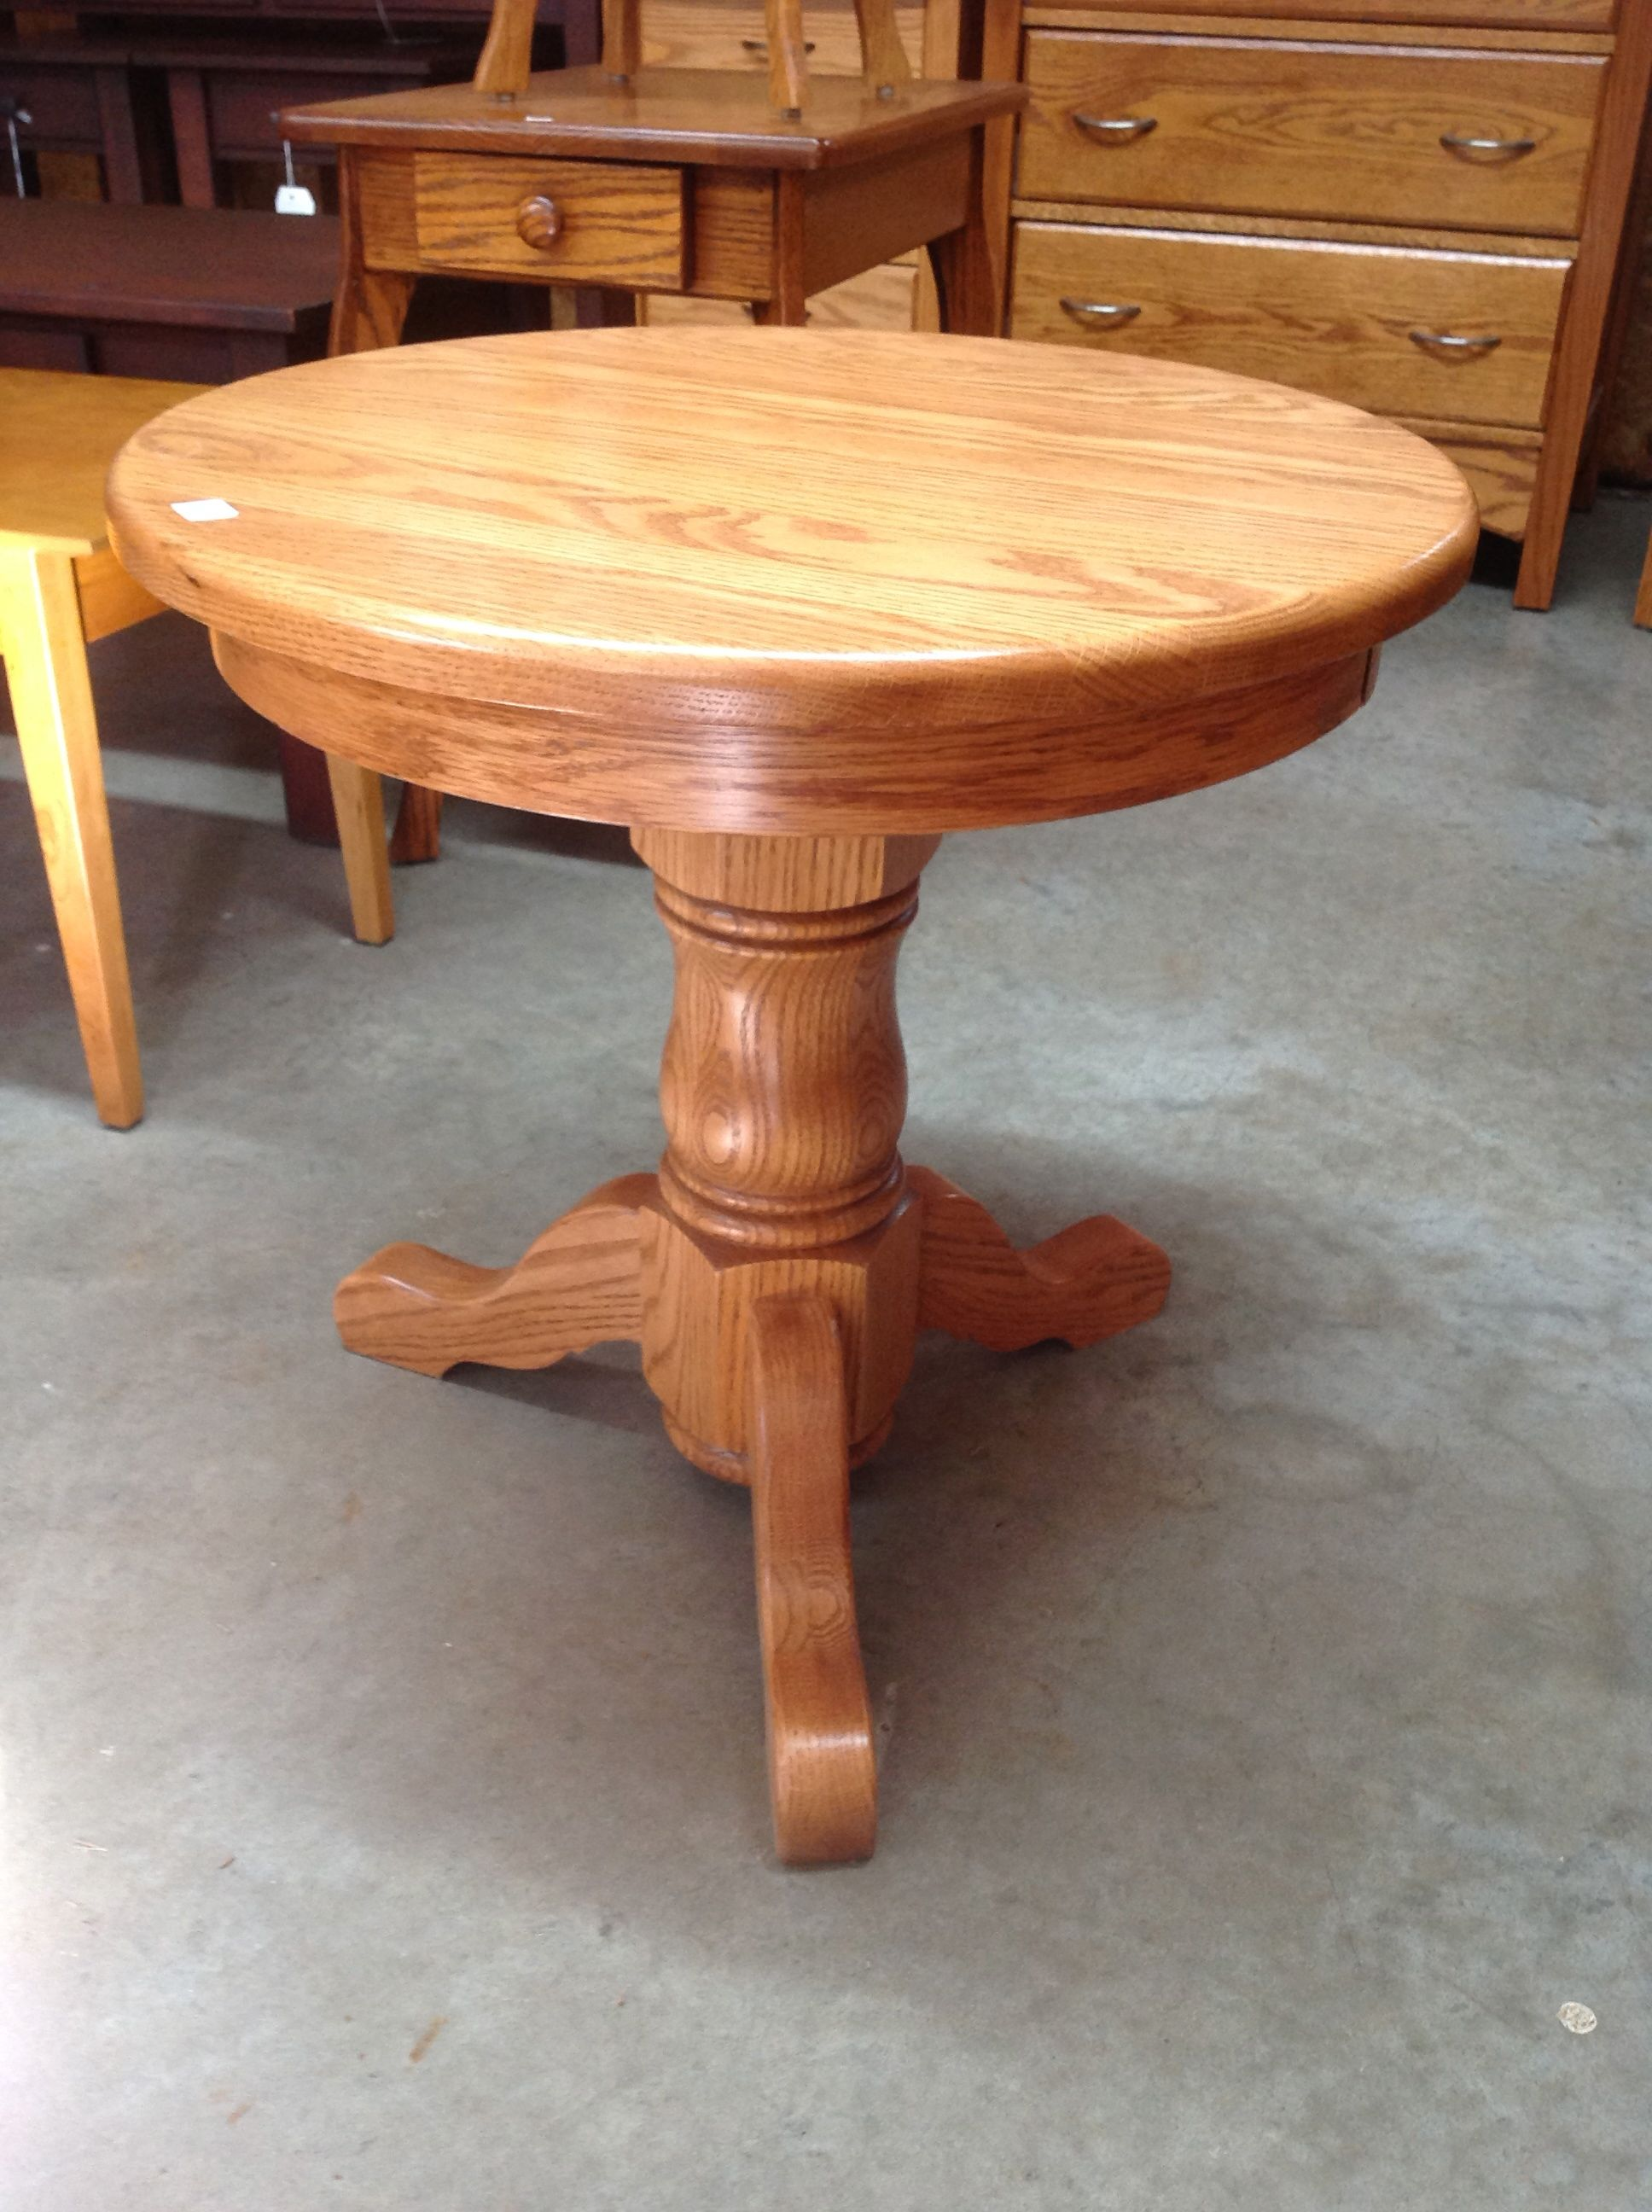 accent table ideas probably terrific best the rustic teal end tables small white pedestal side round roundpedendtable norman handcrafted furniture some with drawers black for tall